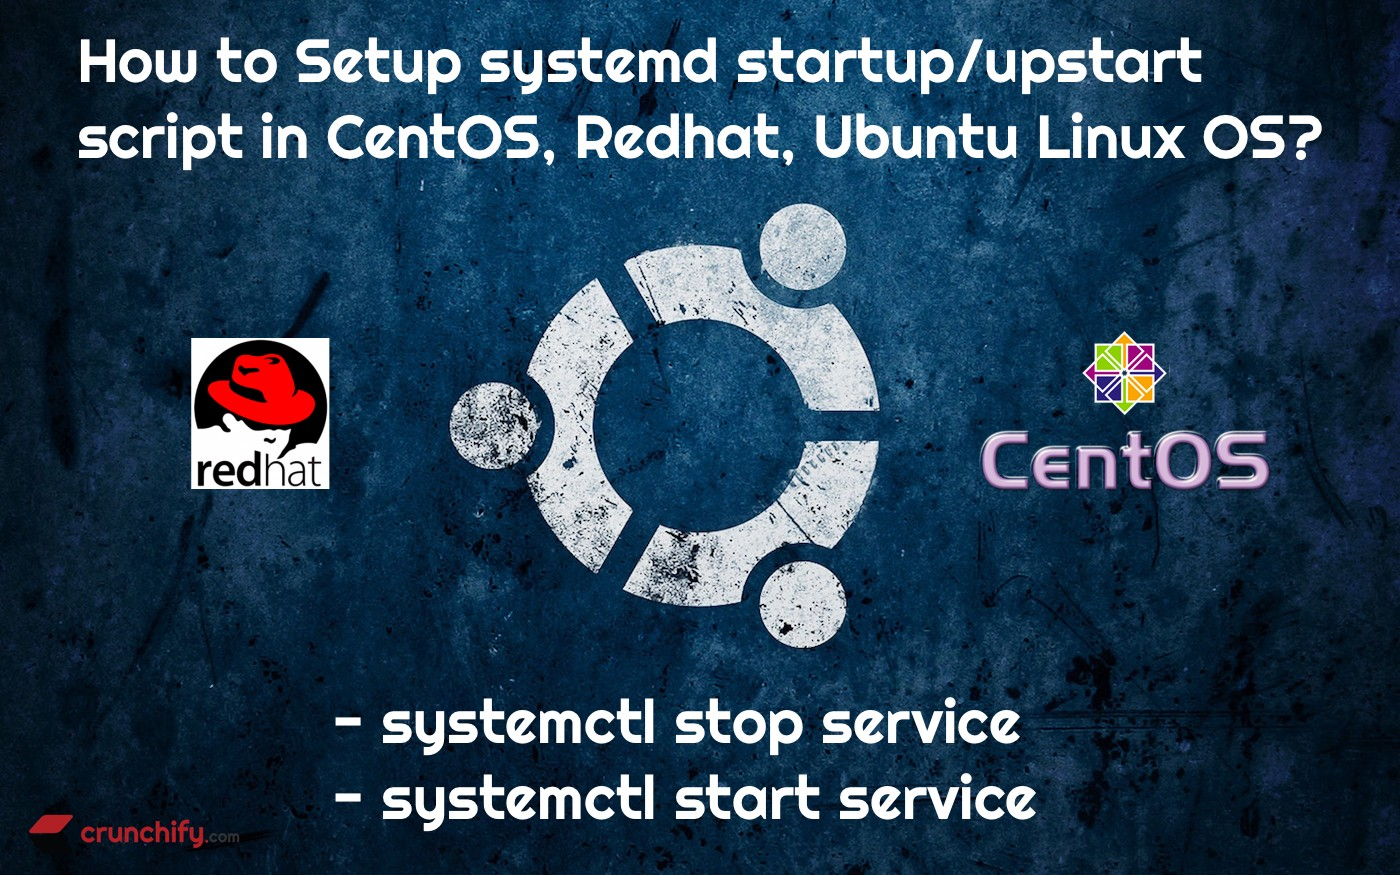 systemctl start/stop service: How to Setup Upstart Script and